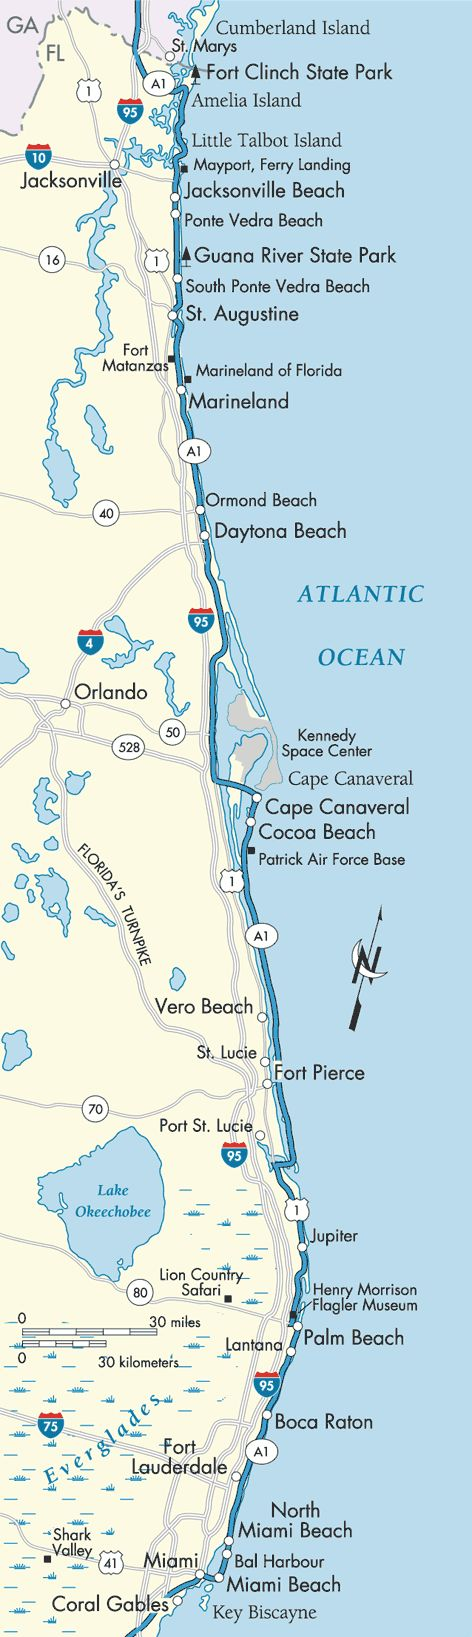 FL: St. Augustine, to either Marineland or Alligator Farm, then past Daytona all the way to Cape Canaveral/Cocoa Beach.